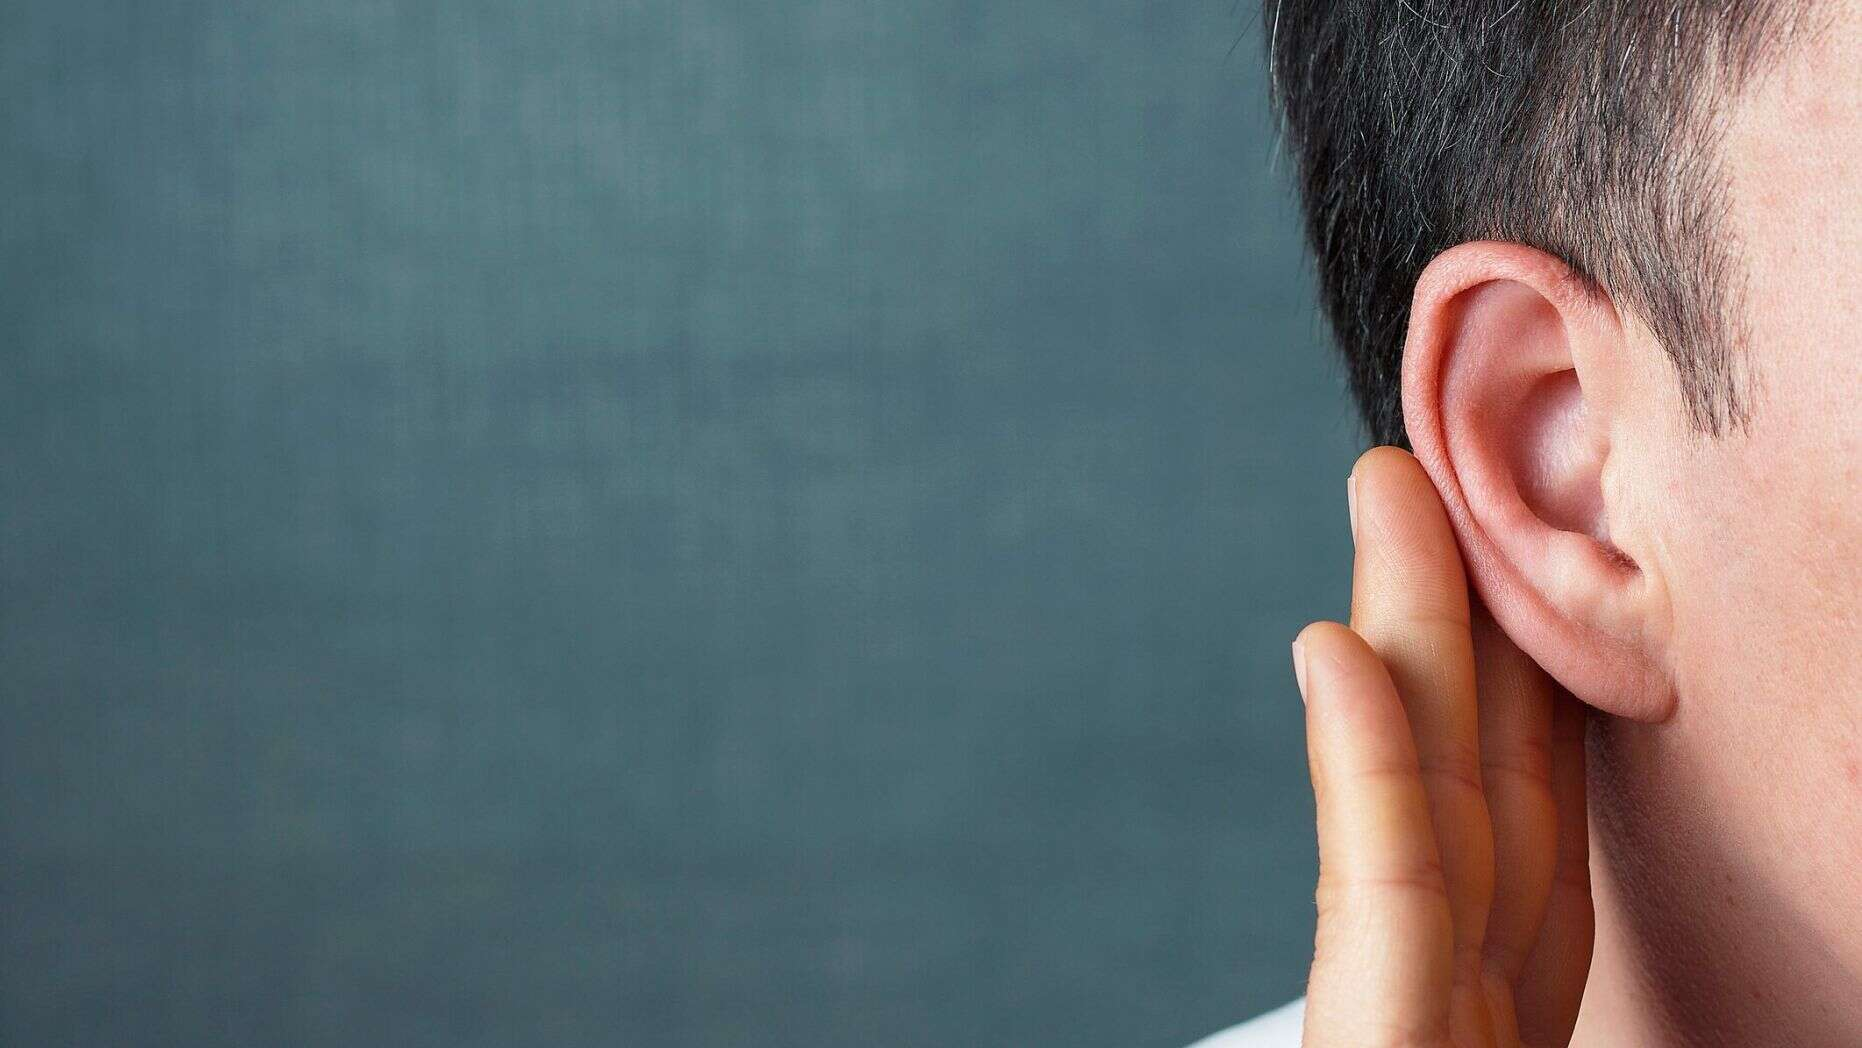 Hearing loss will affect 1 in 4 people by 2050, WHO estimates